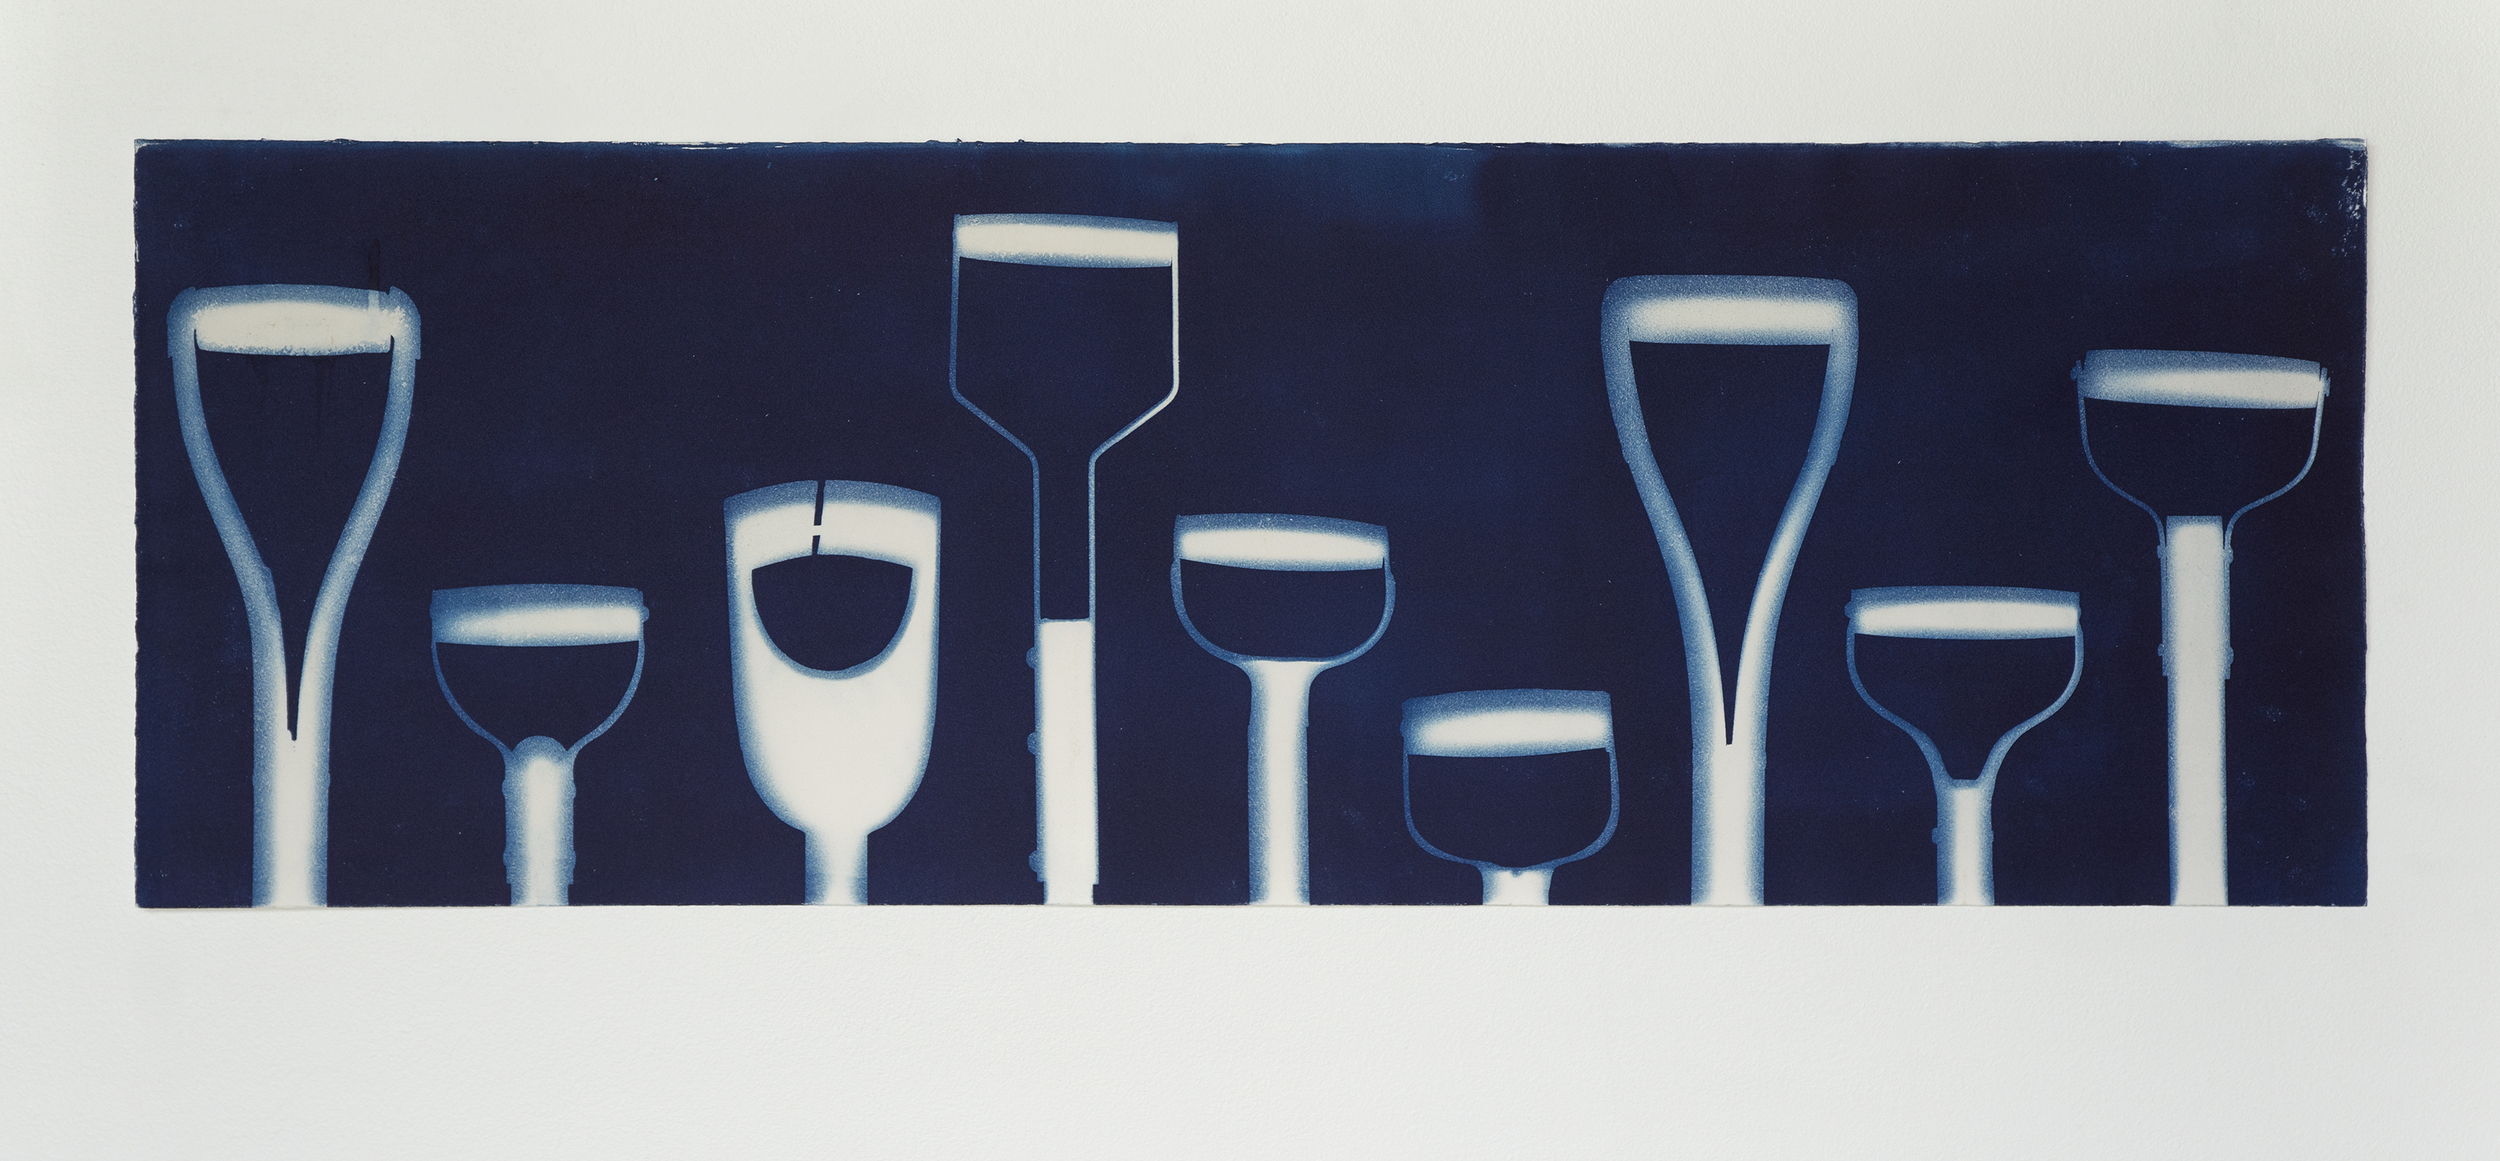 Not a Dozen Odd  I  2014  I  cyanotype print on paper  I  44 x 15.25